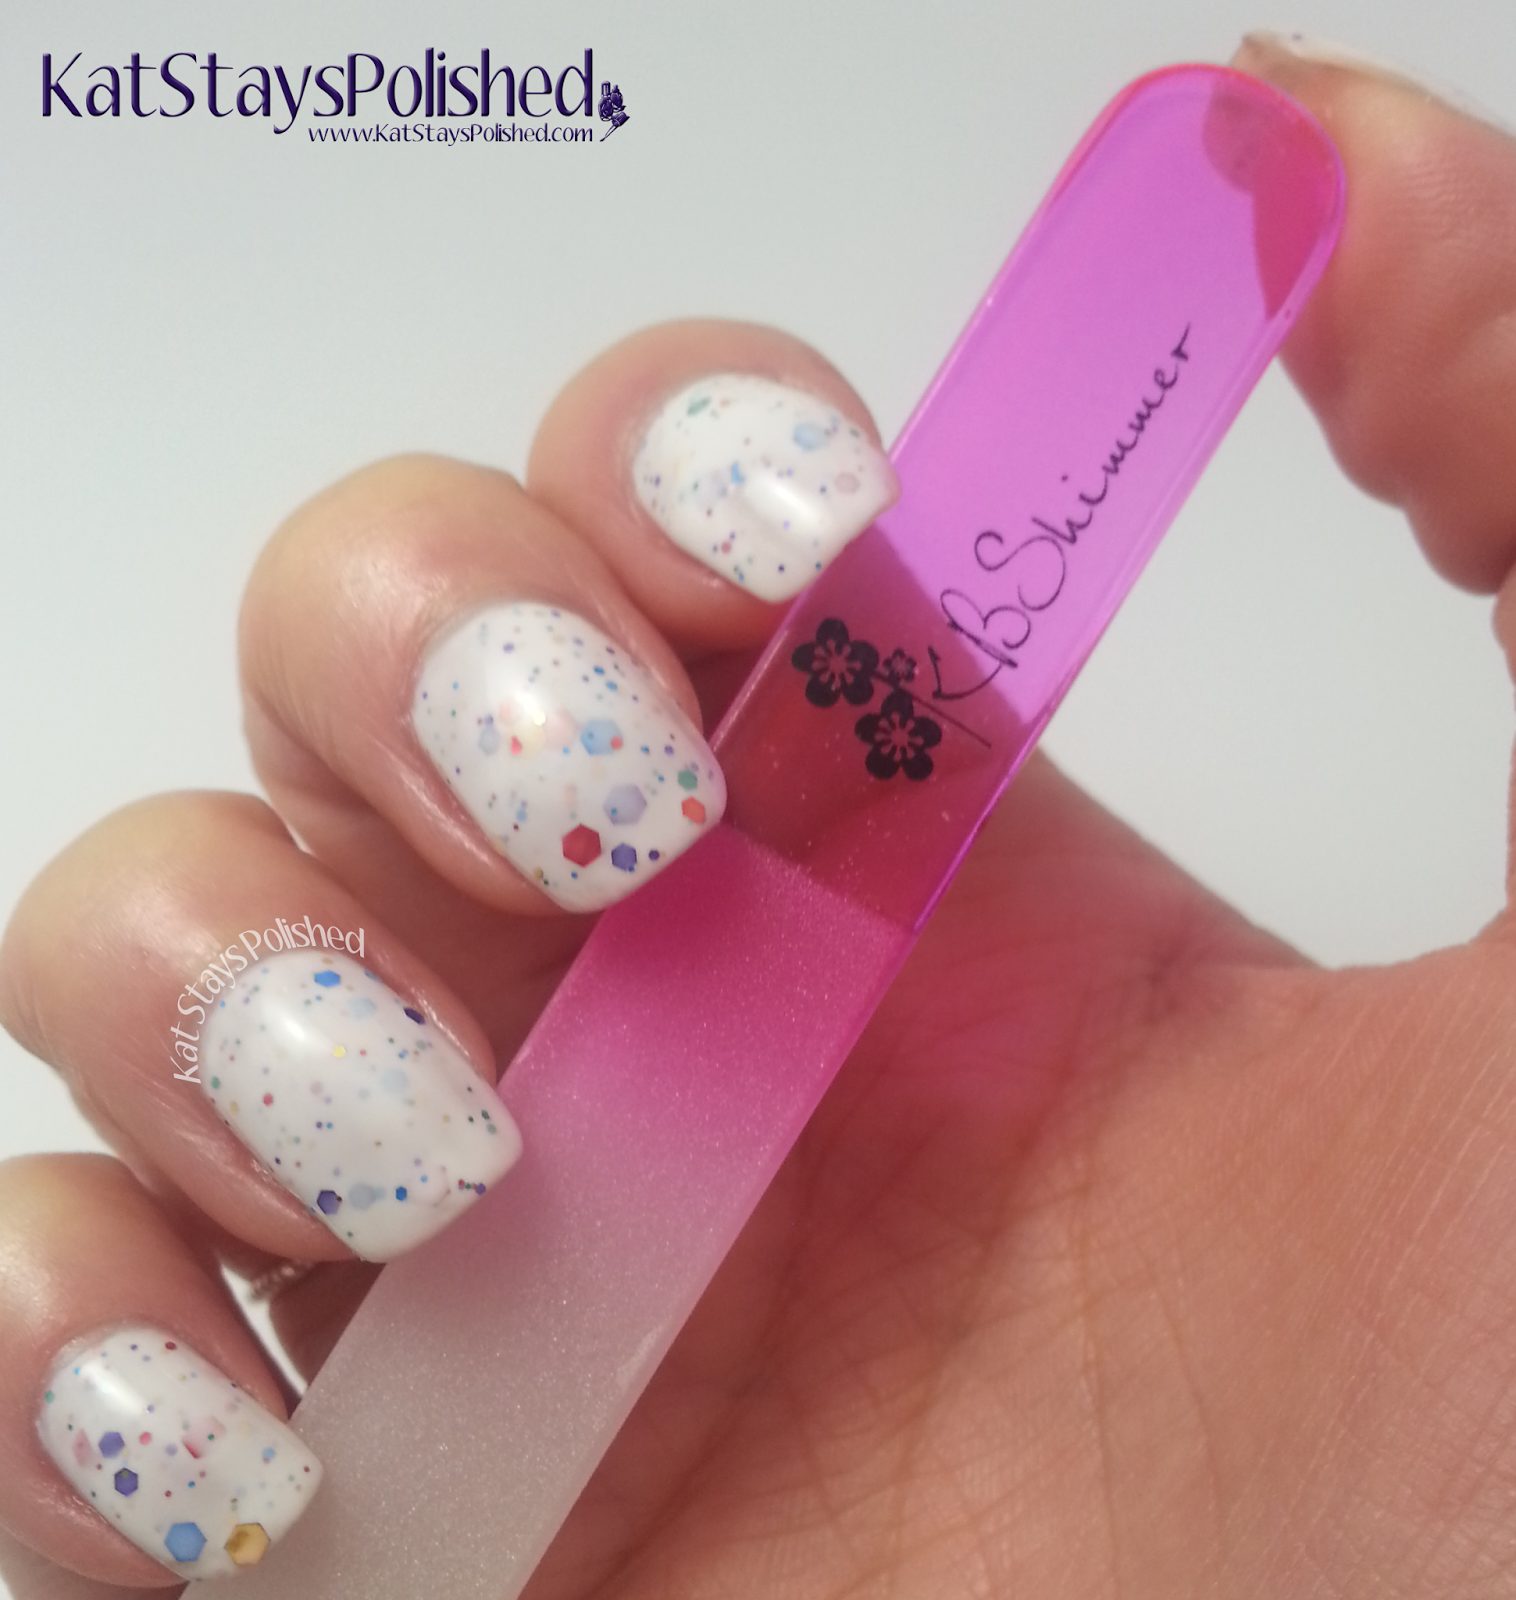 KBShimmer - Crystal File | Kat Stays Polished